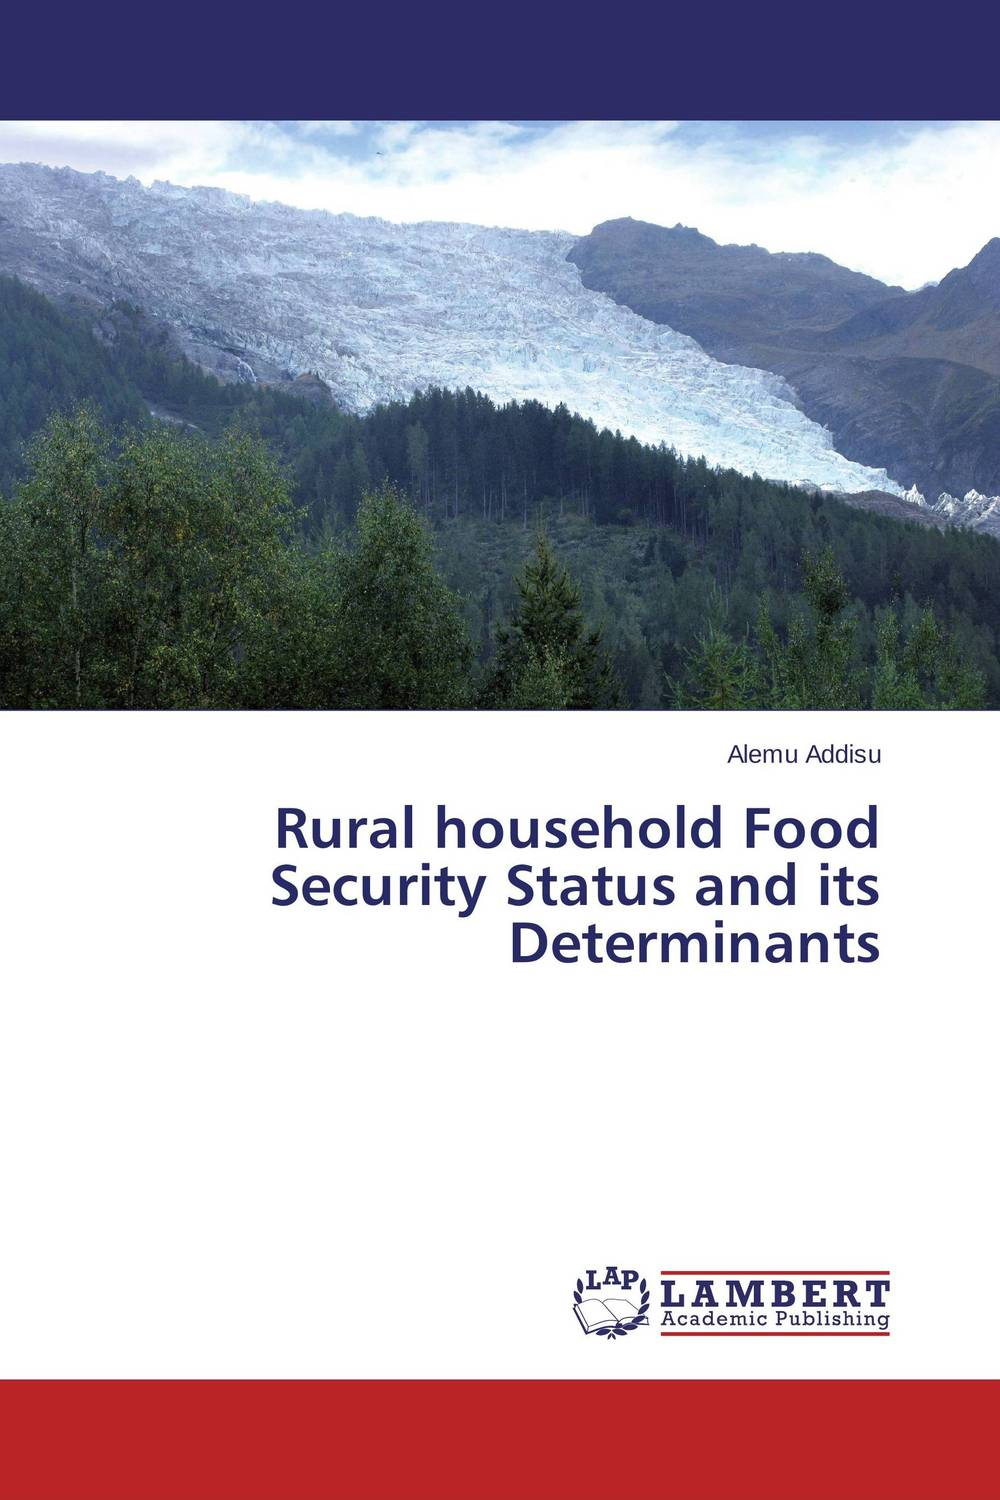 где купить Rural household Food Security Status and its Determinants по лучшей цене